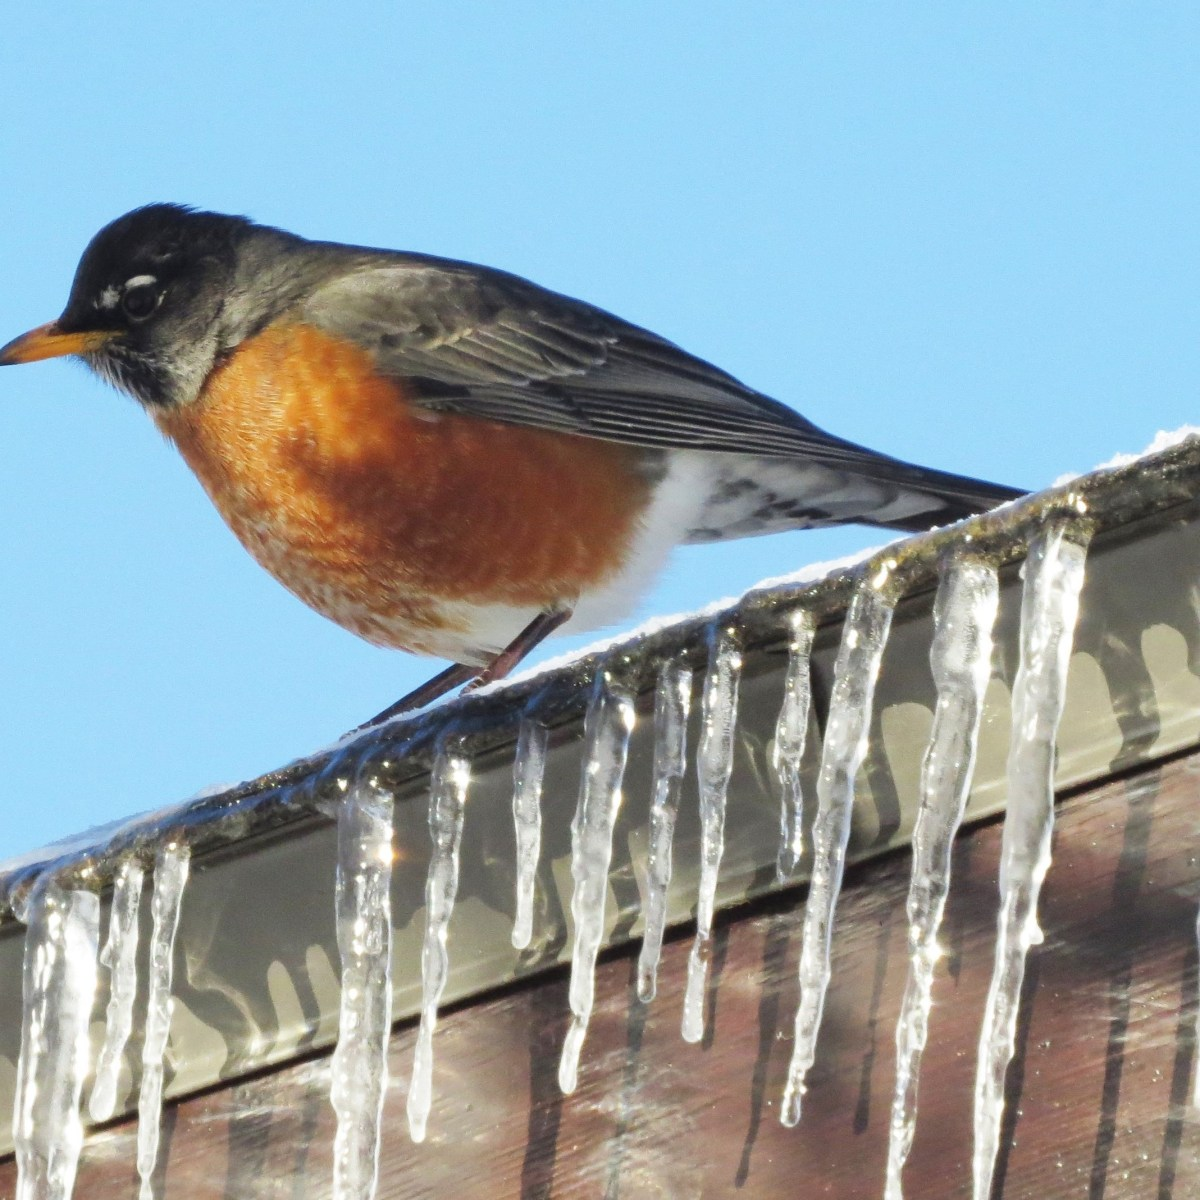 A Robin perched on a roof that has icicles hanging down. The sky in the background is bright-blue.